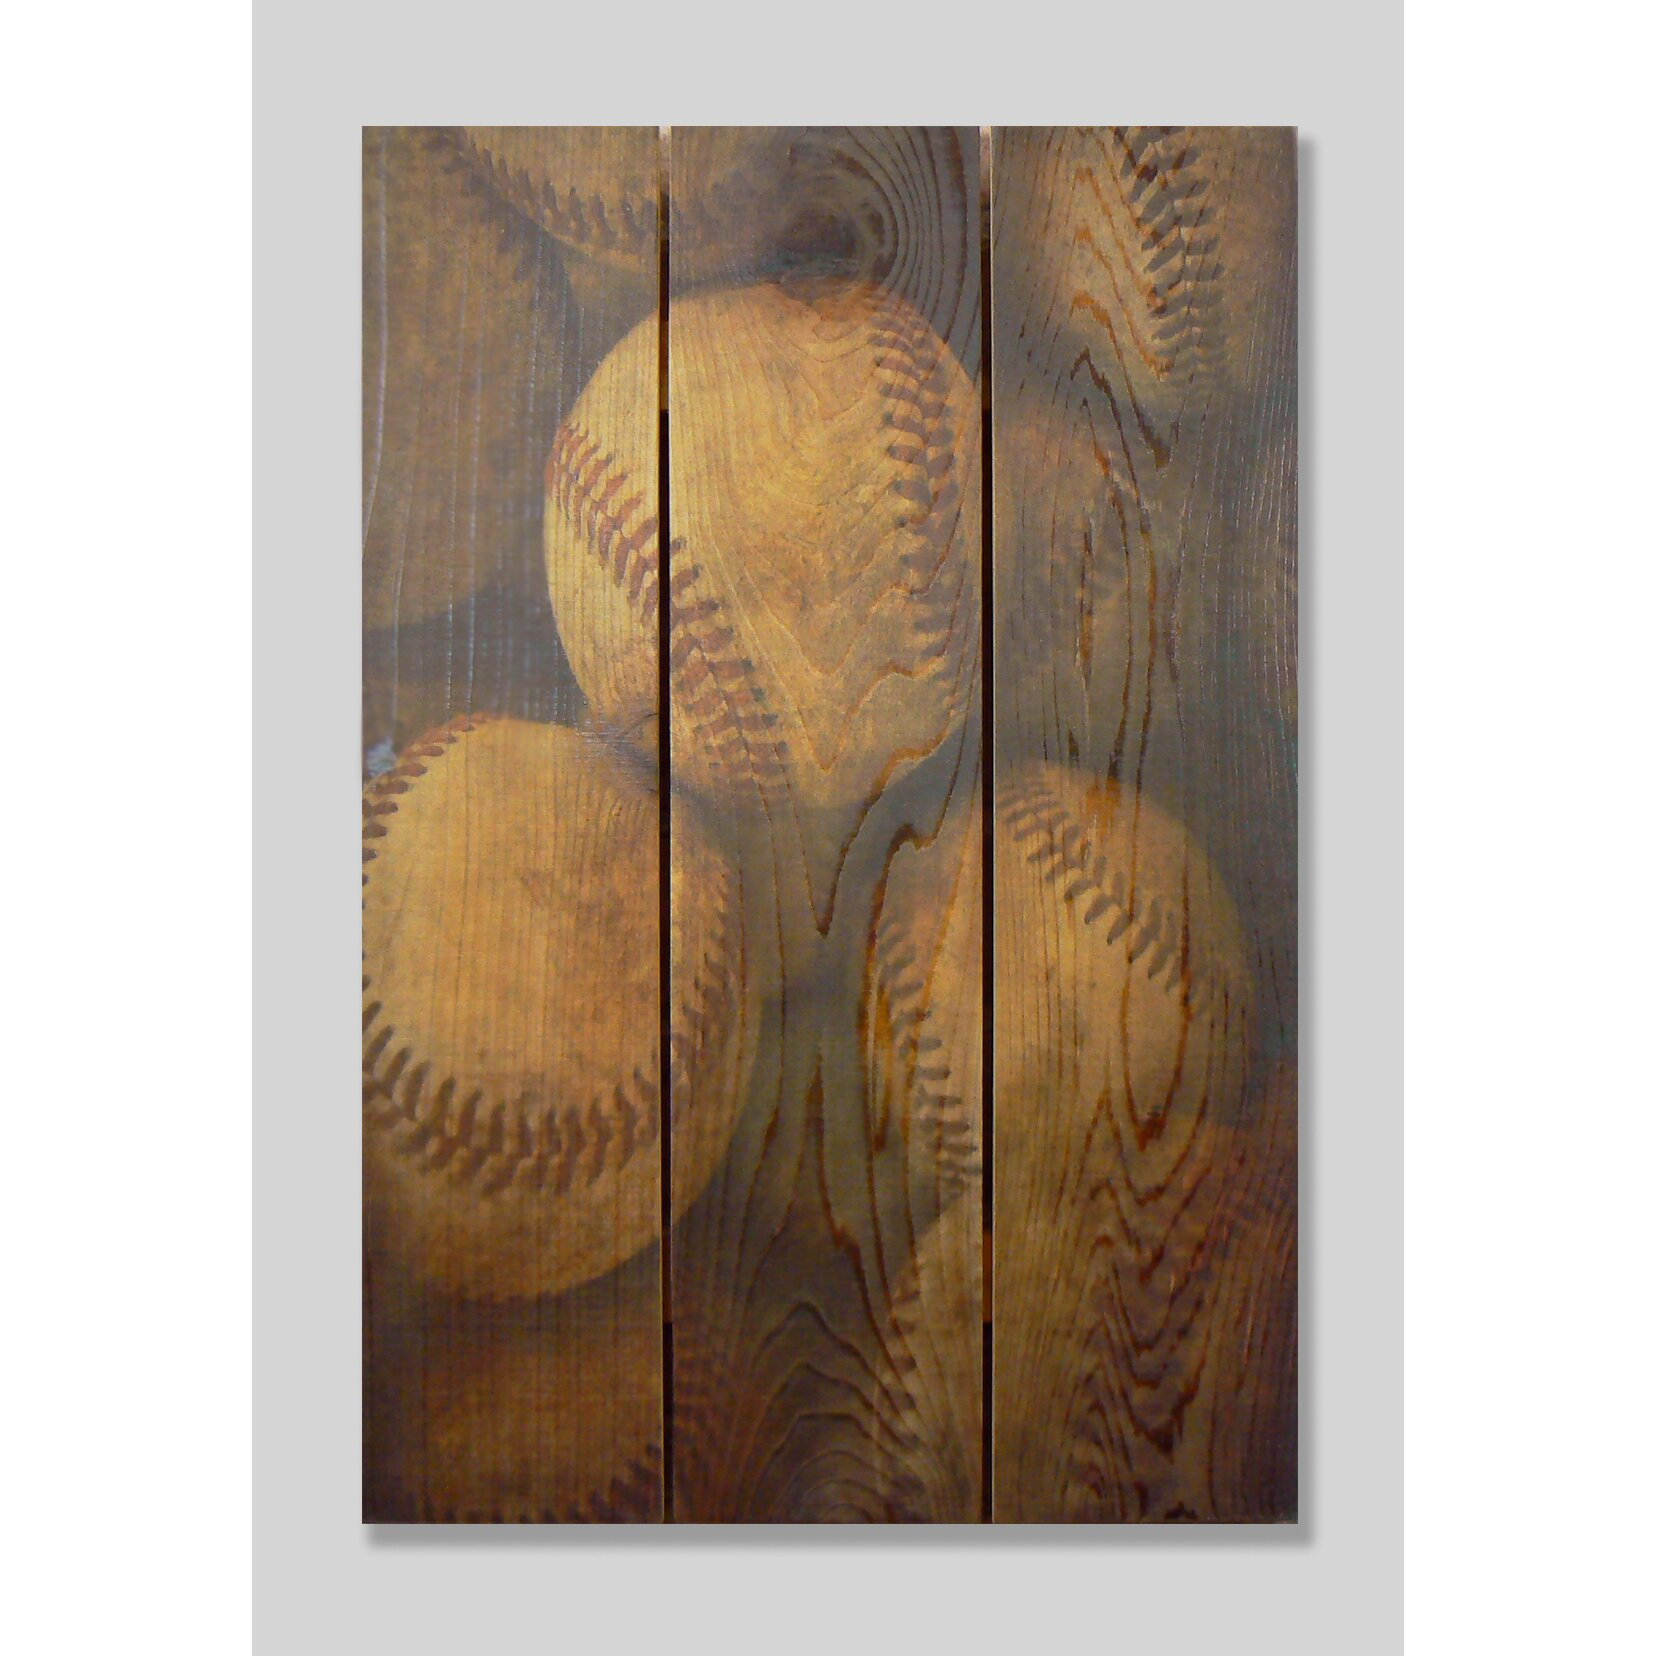 Vintage Baseball Wall Decor : Gizaun art vintage baseball cedar painting print on